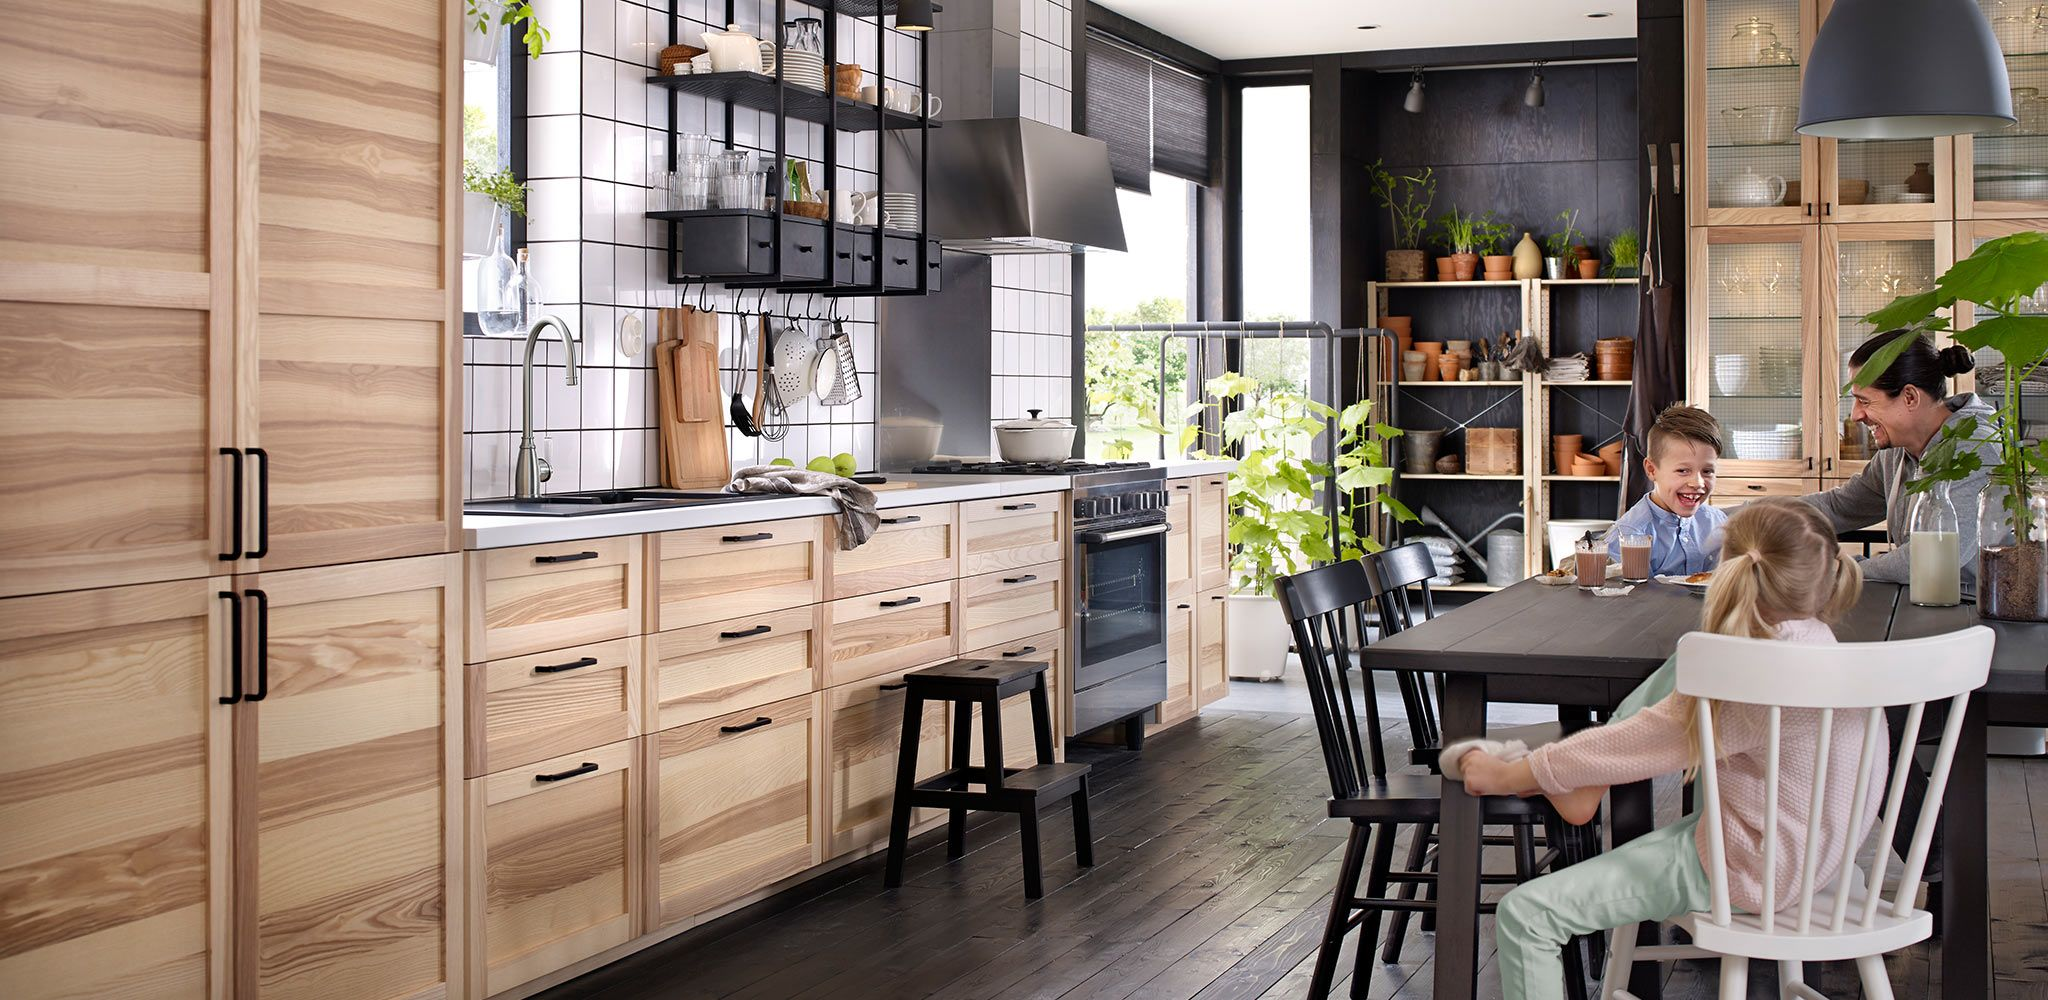 Küche Ikea Torhamn Torhamn Kitchen Konyha In 2019 Ikea Kitchen Lighting